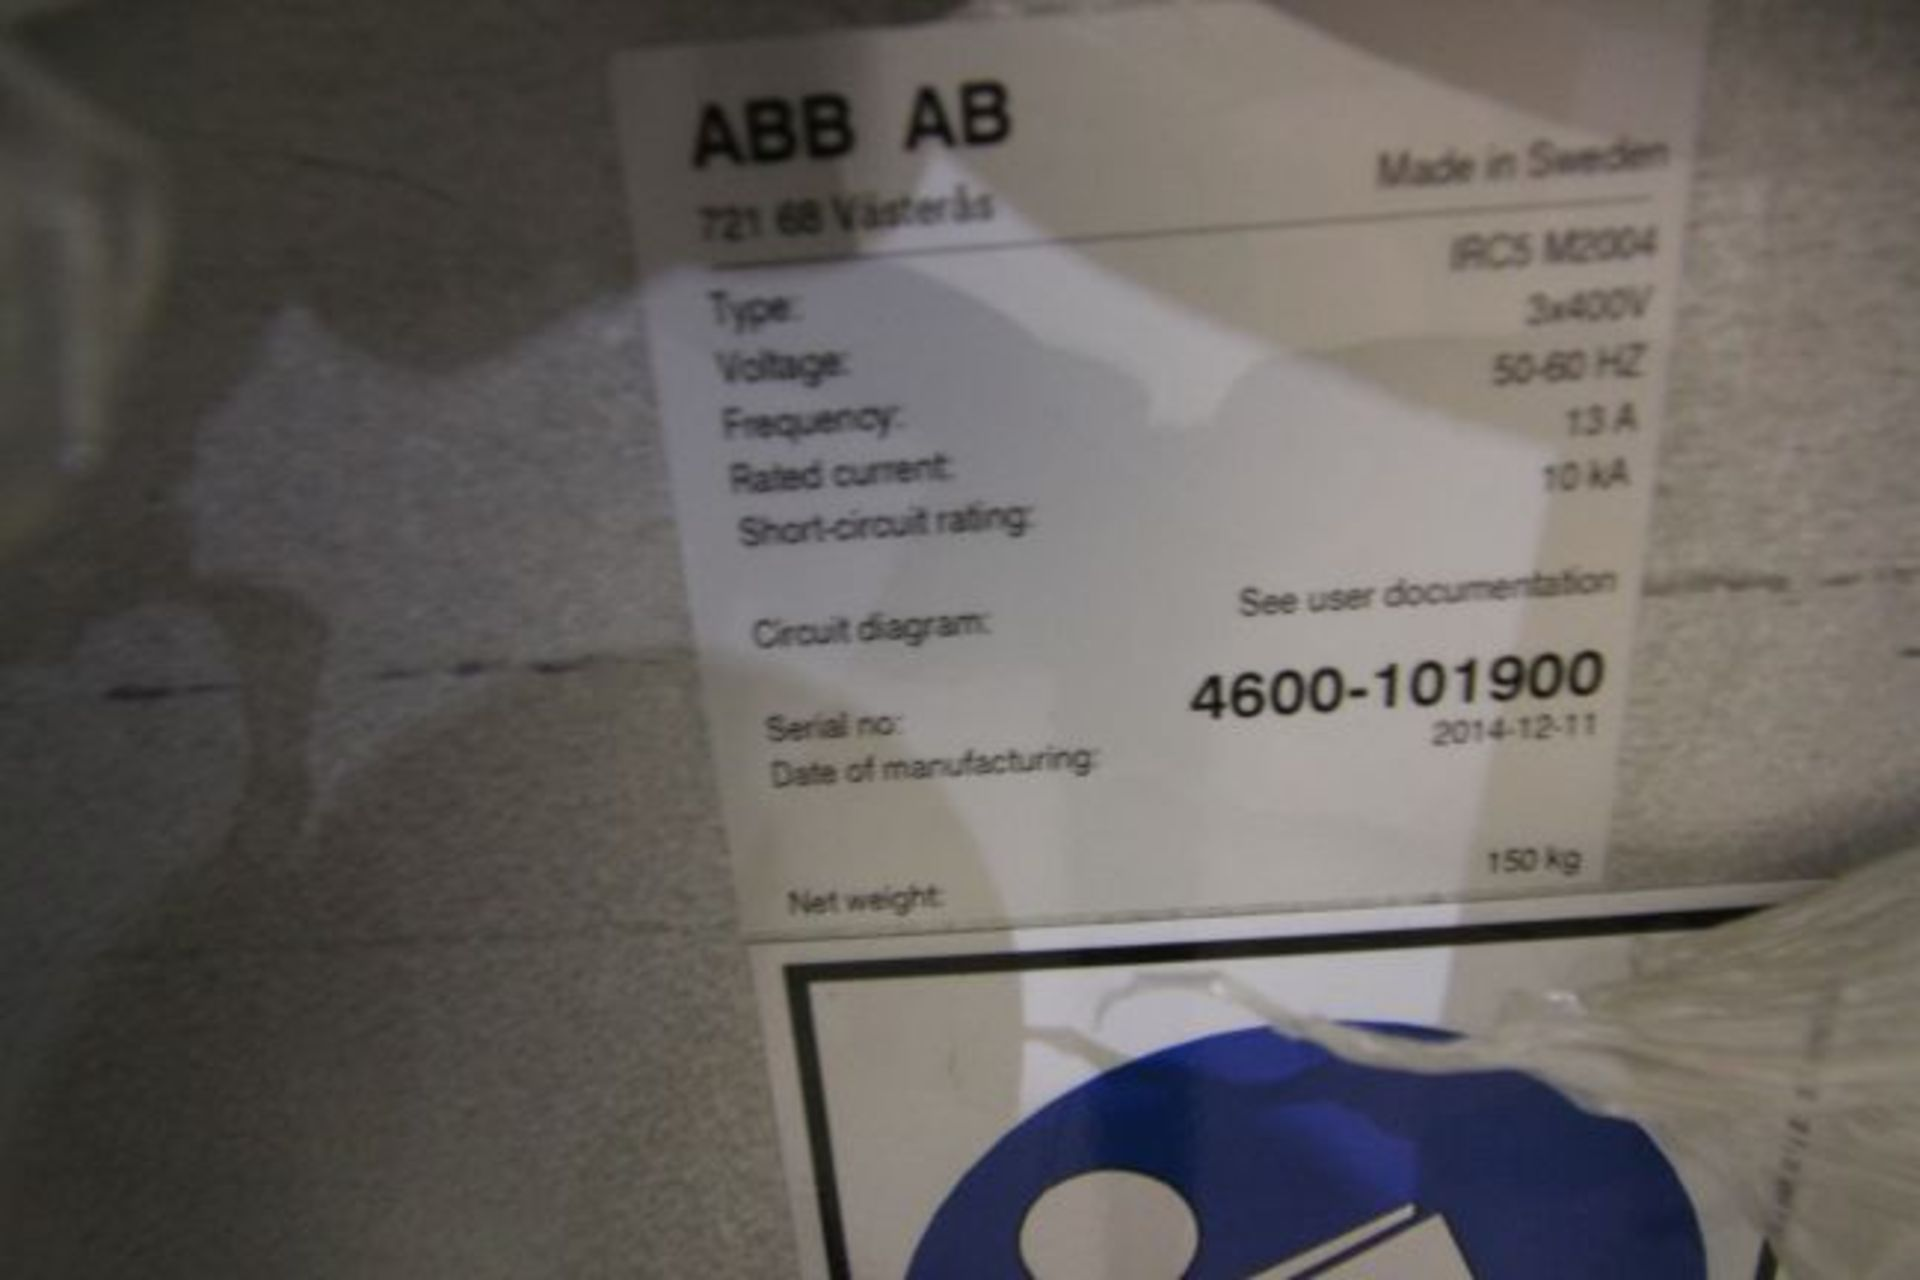 (NEW) ABB ROBOT IRB 4600 2.55/40KG WITH IRC5 CONTROLS, YEAR 2014, SN 101900 TEACH PENDANT& CABLES - Image 9 of 9